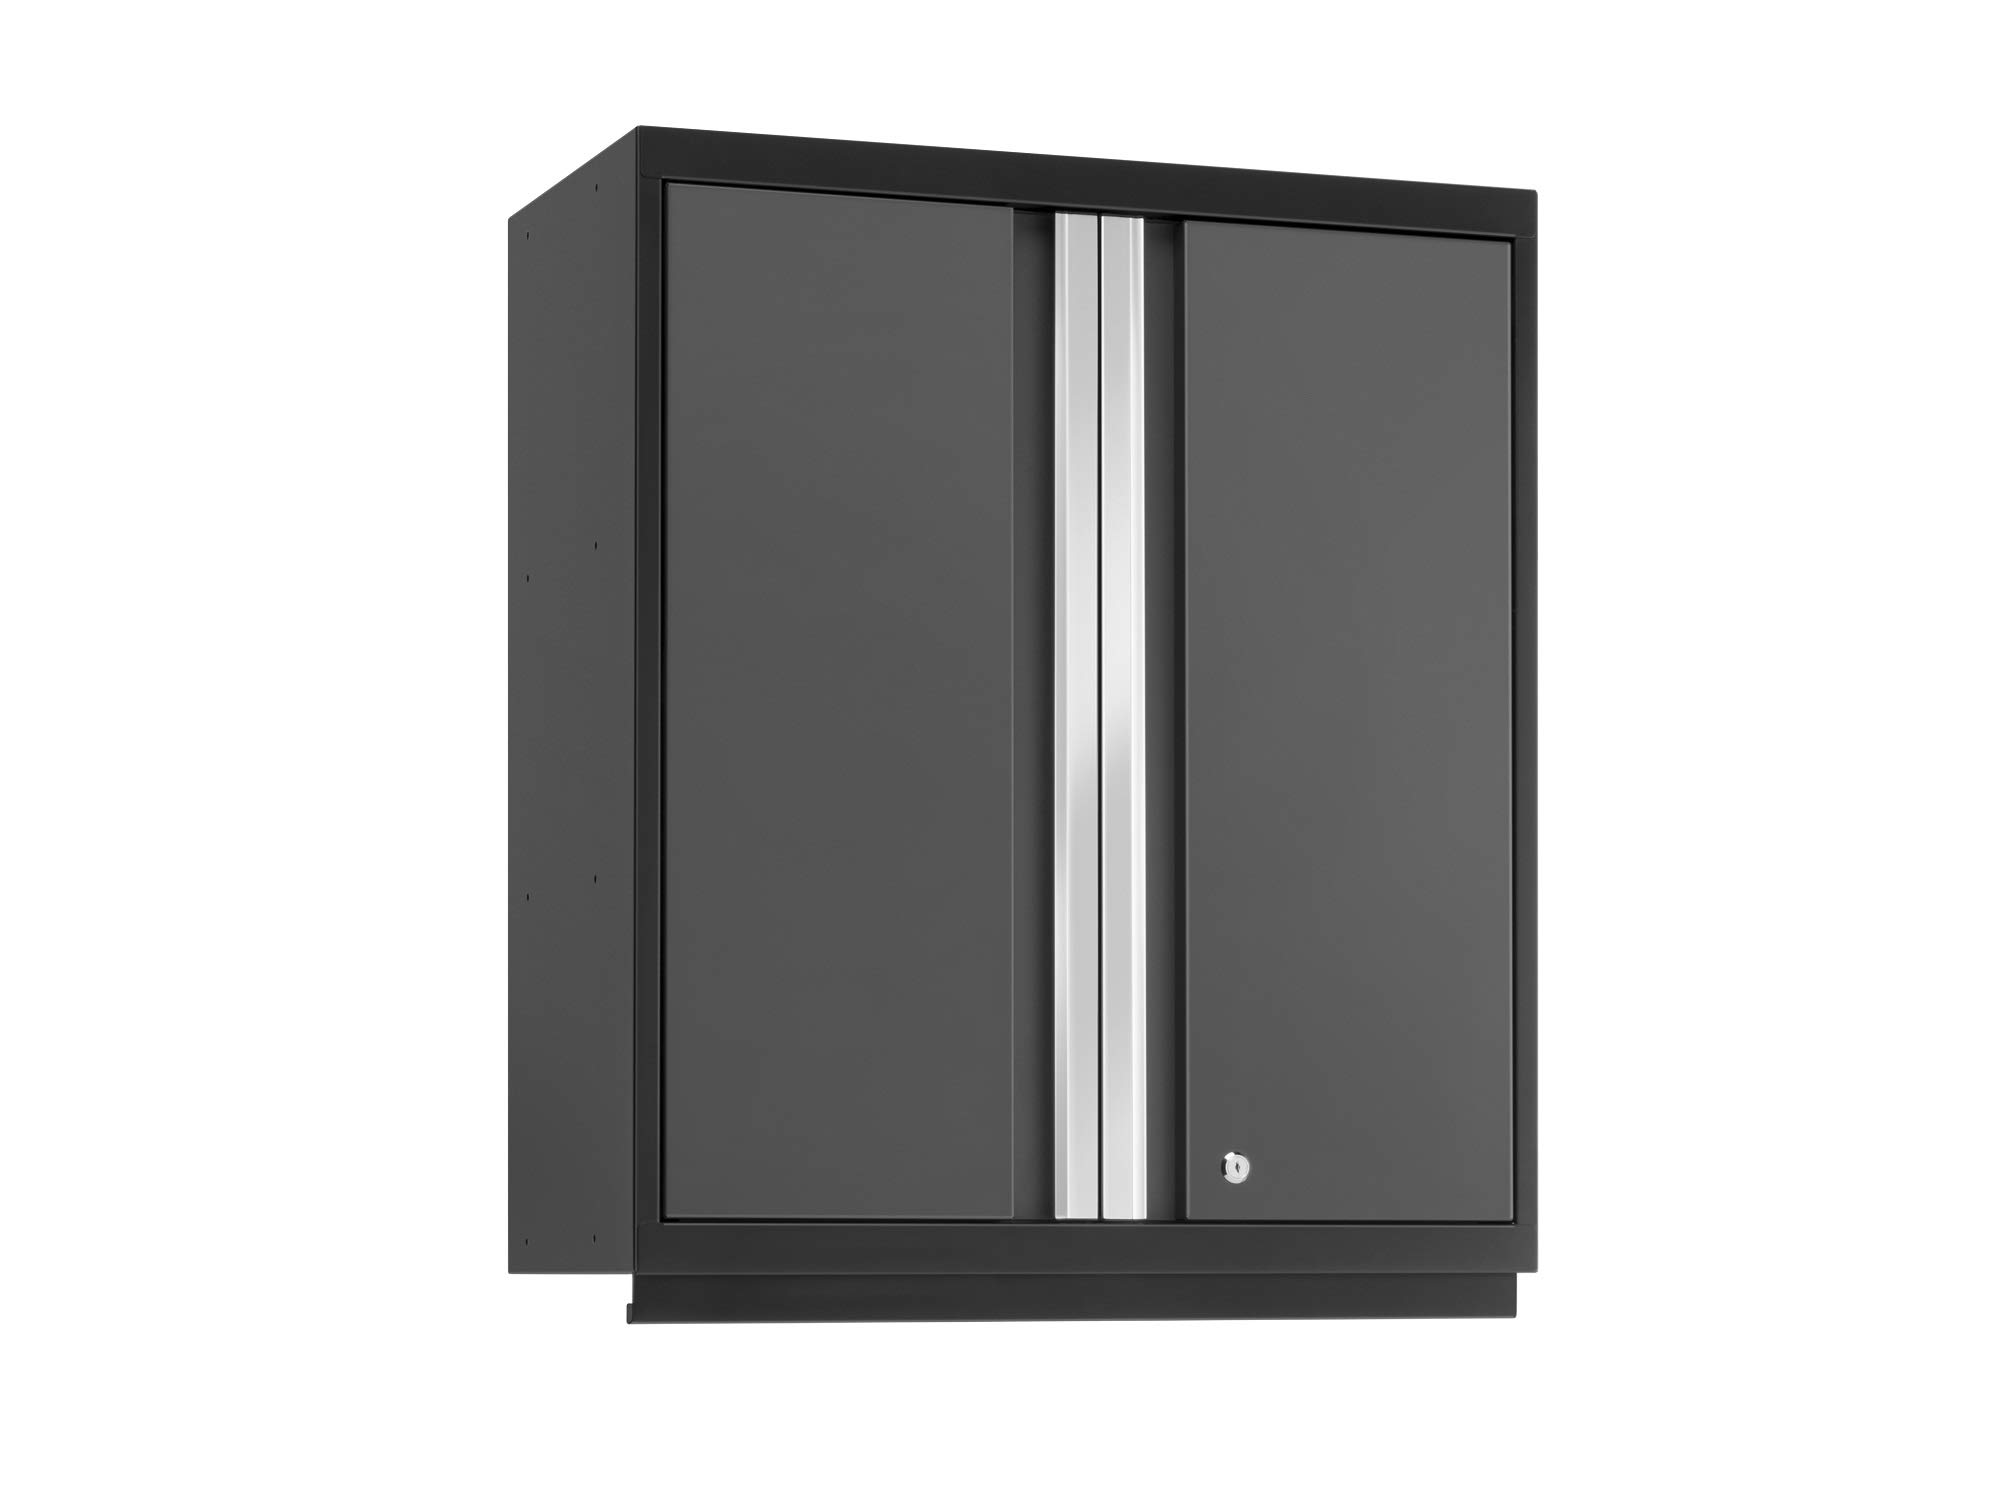 NewAge Products Pro 3.0 Gray Tall Wall, Garage Cabinet, 52015